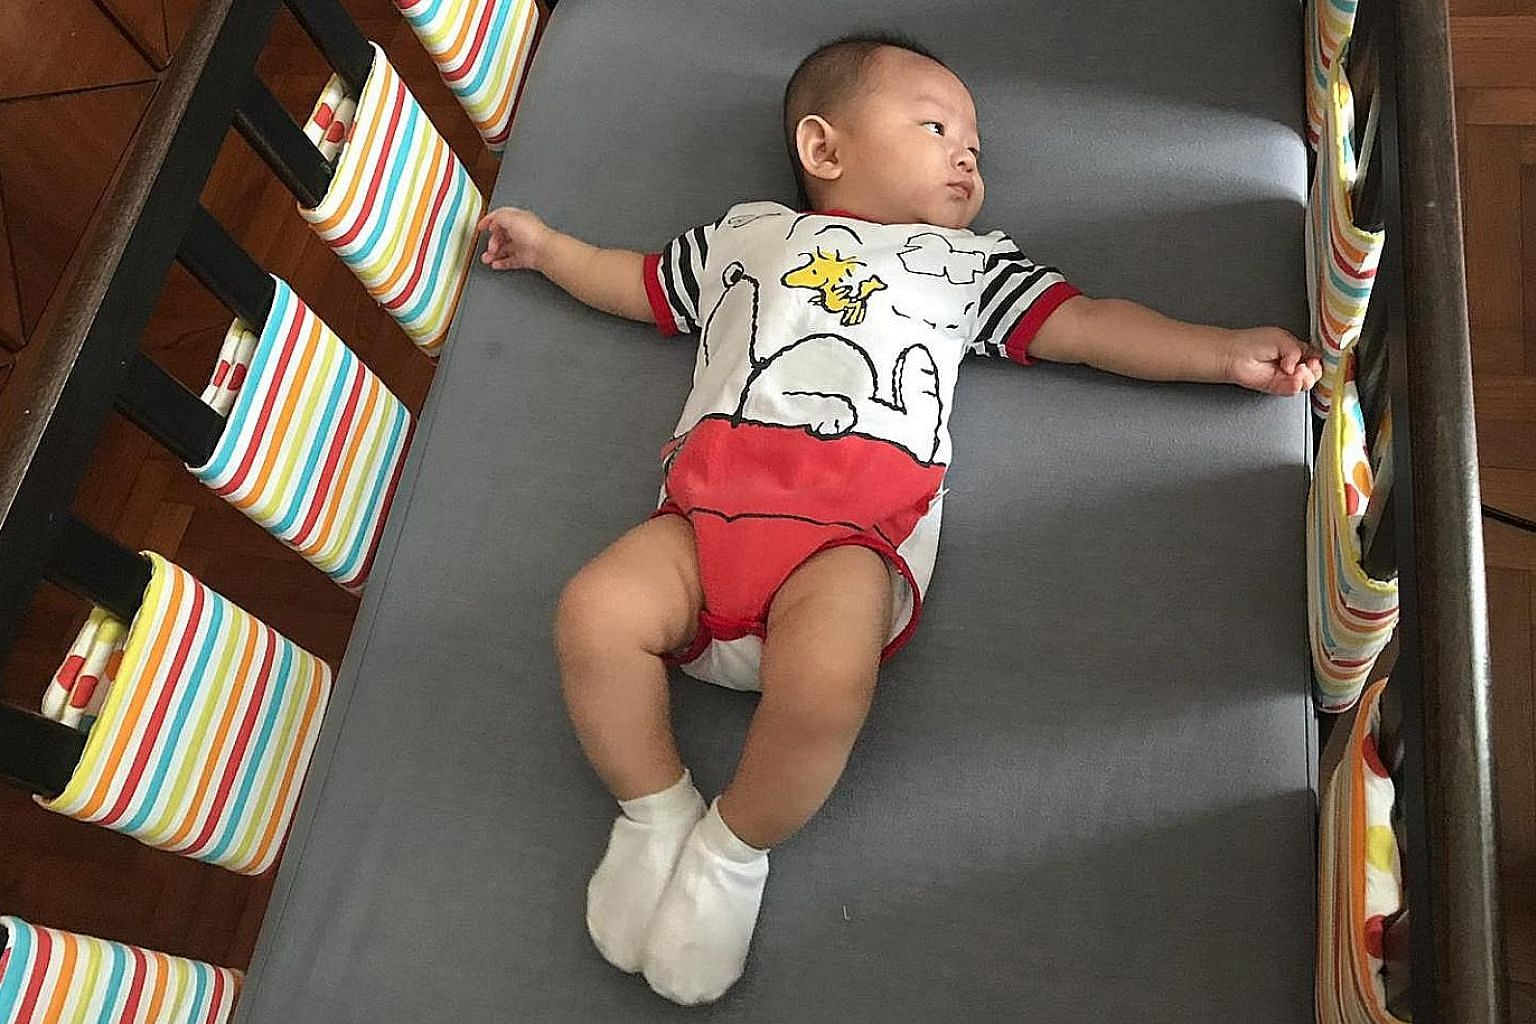 When Ms Chua Jia Ying decided to replace the cloth cot bumpers on her five-month-old son's cot with individual bumper wraps for the slats, it lowered the risk of the baby accidentally pressing his face against the bumpers and suffocating.